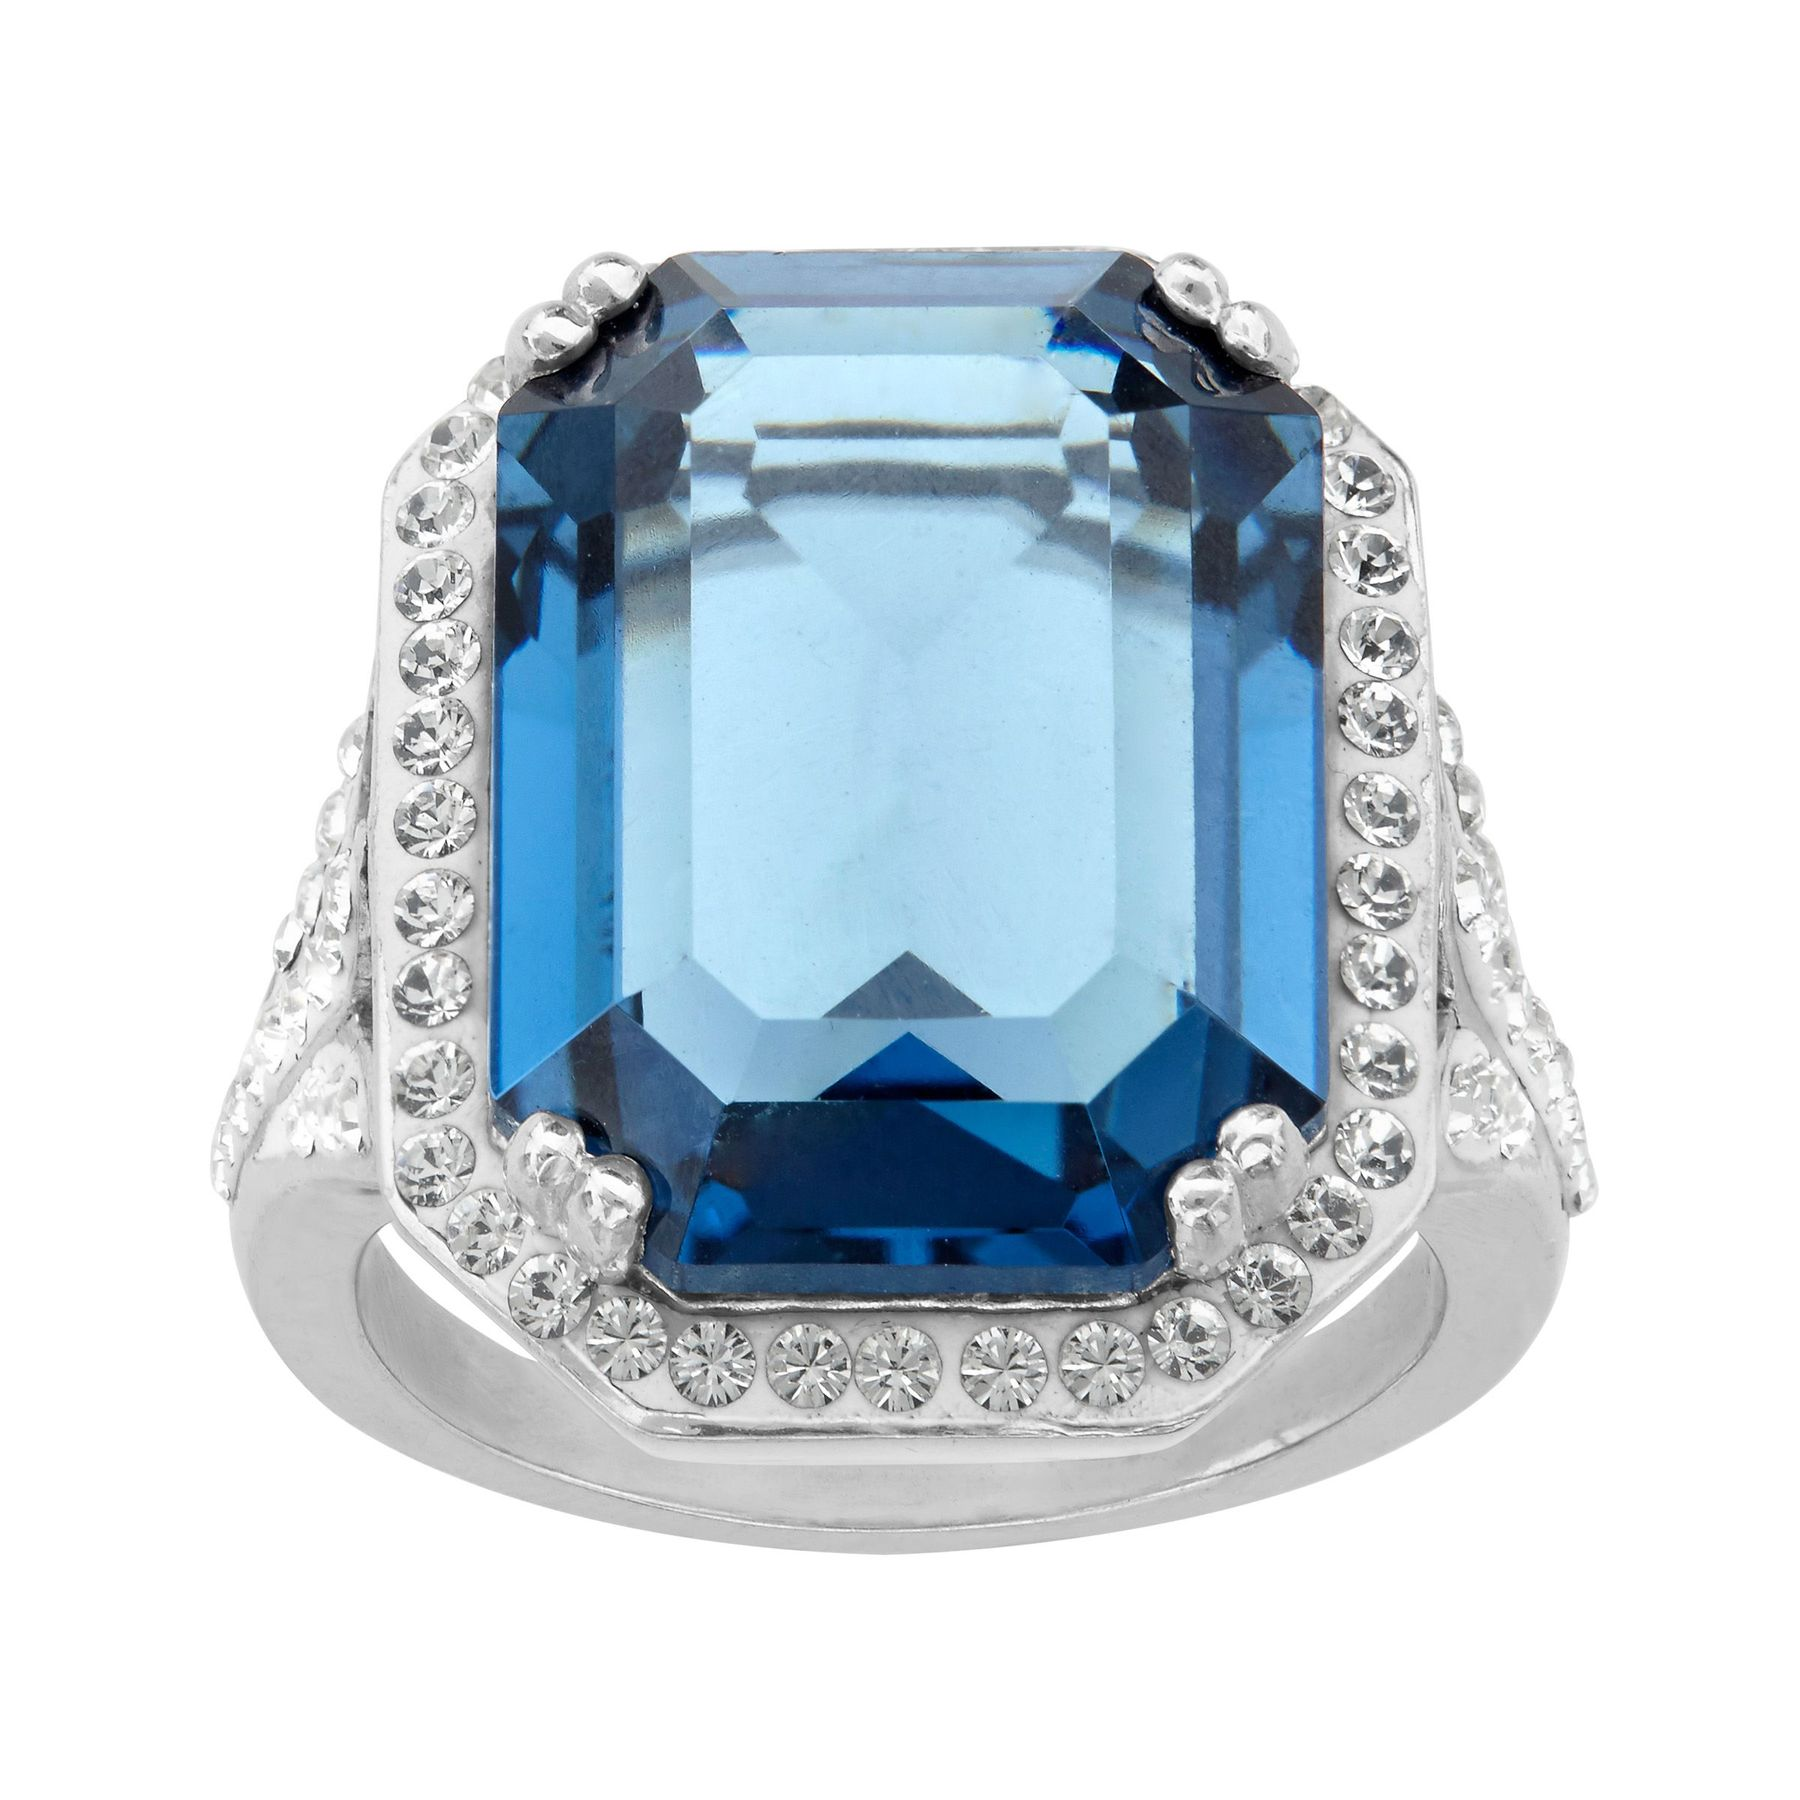 ef2720a8b Crystaluxe Ring With Blue White Swarovski Crystals In Sterling. Ring Blue Swarovski  Crystal Gold Plated Sterling Silver Arlizi 0974 Lucy